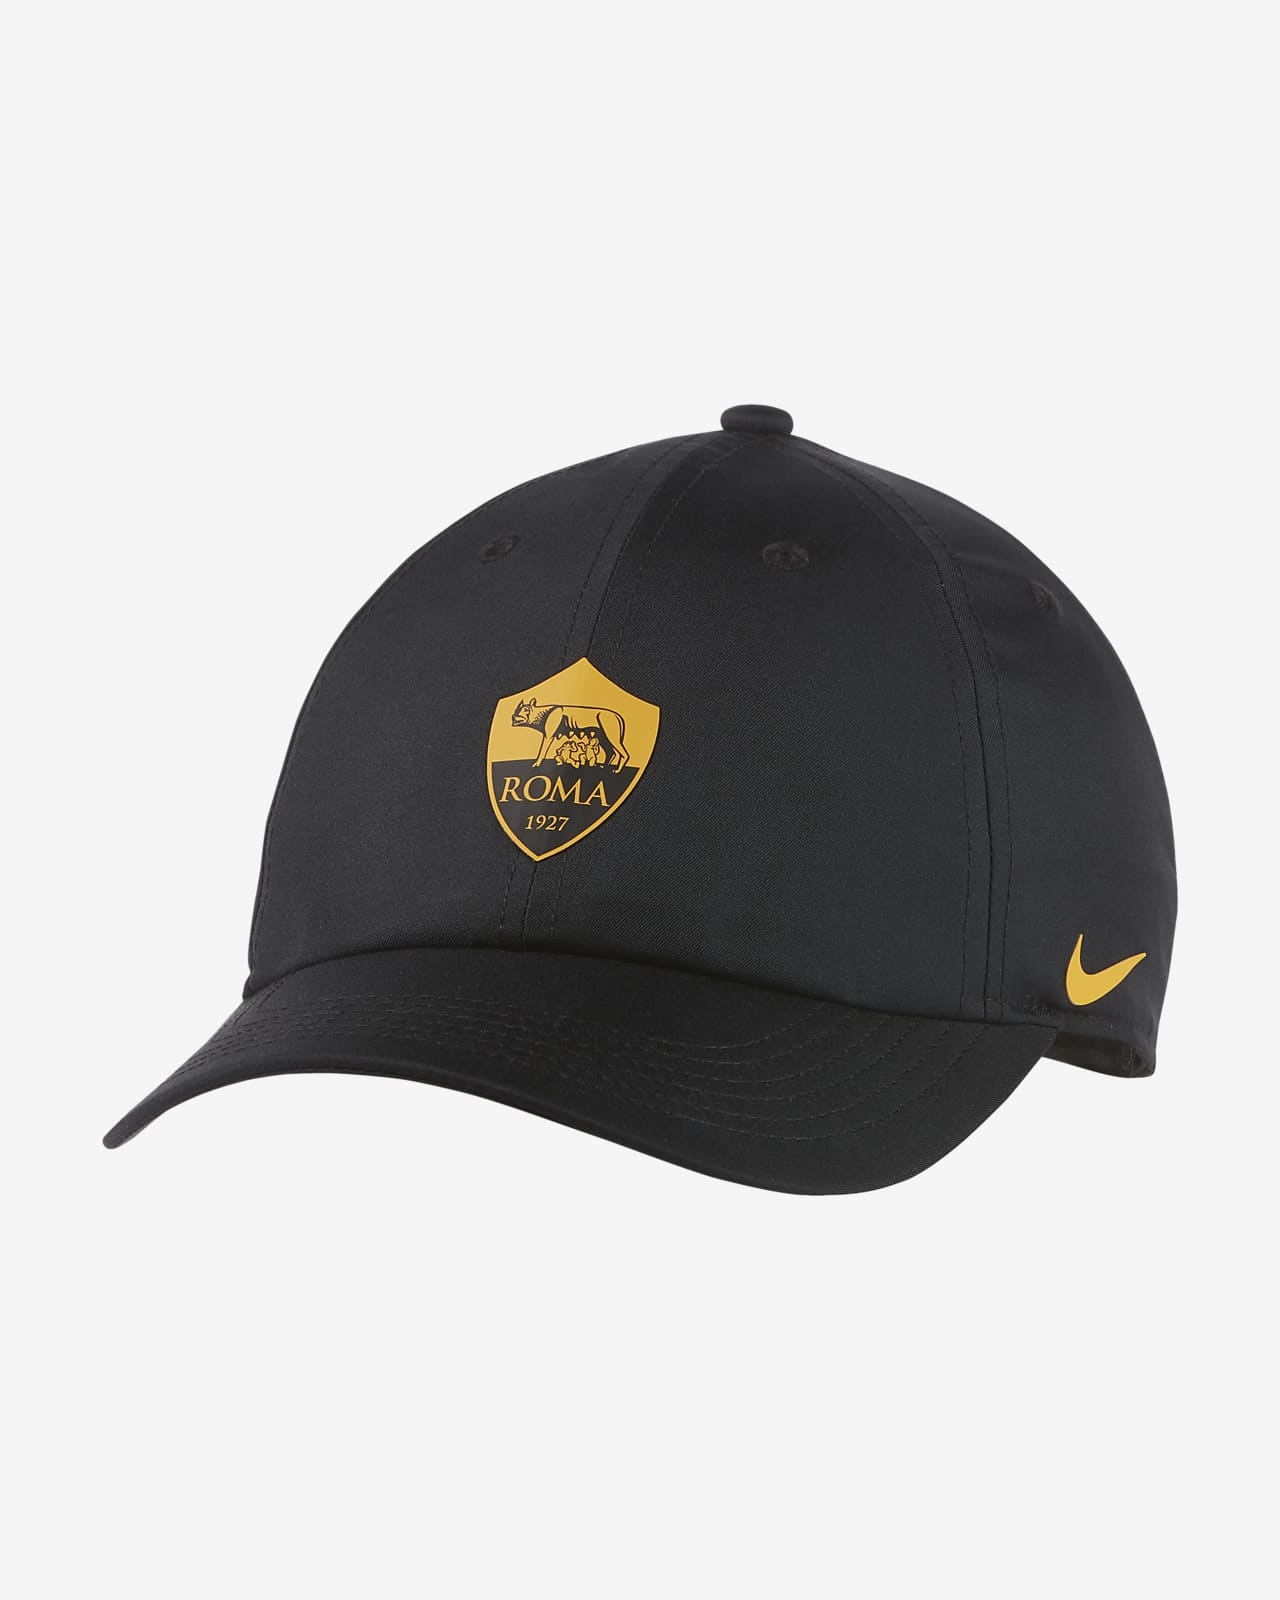 Nike Dri-FIT AS Roma Heritage86 Kids' Adjustable Hat